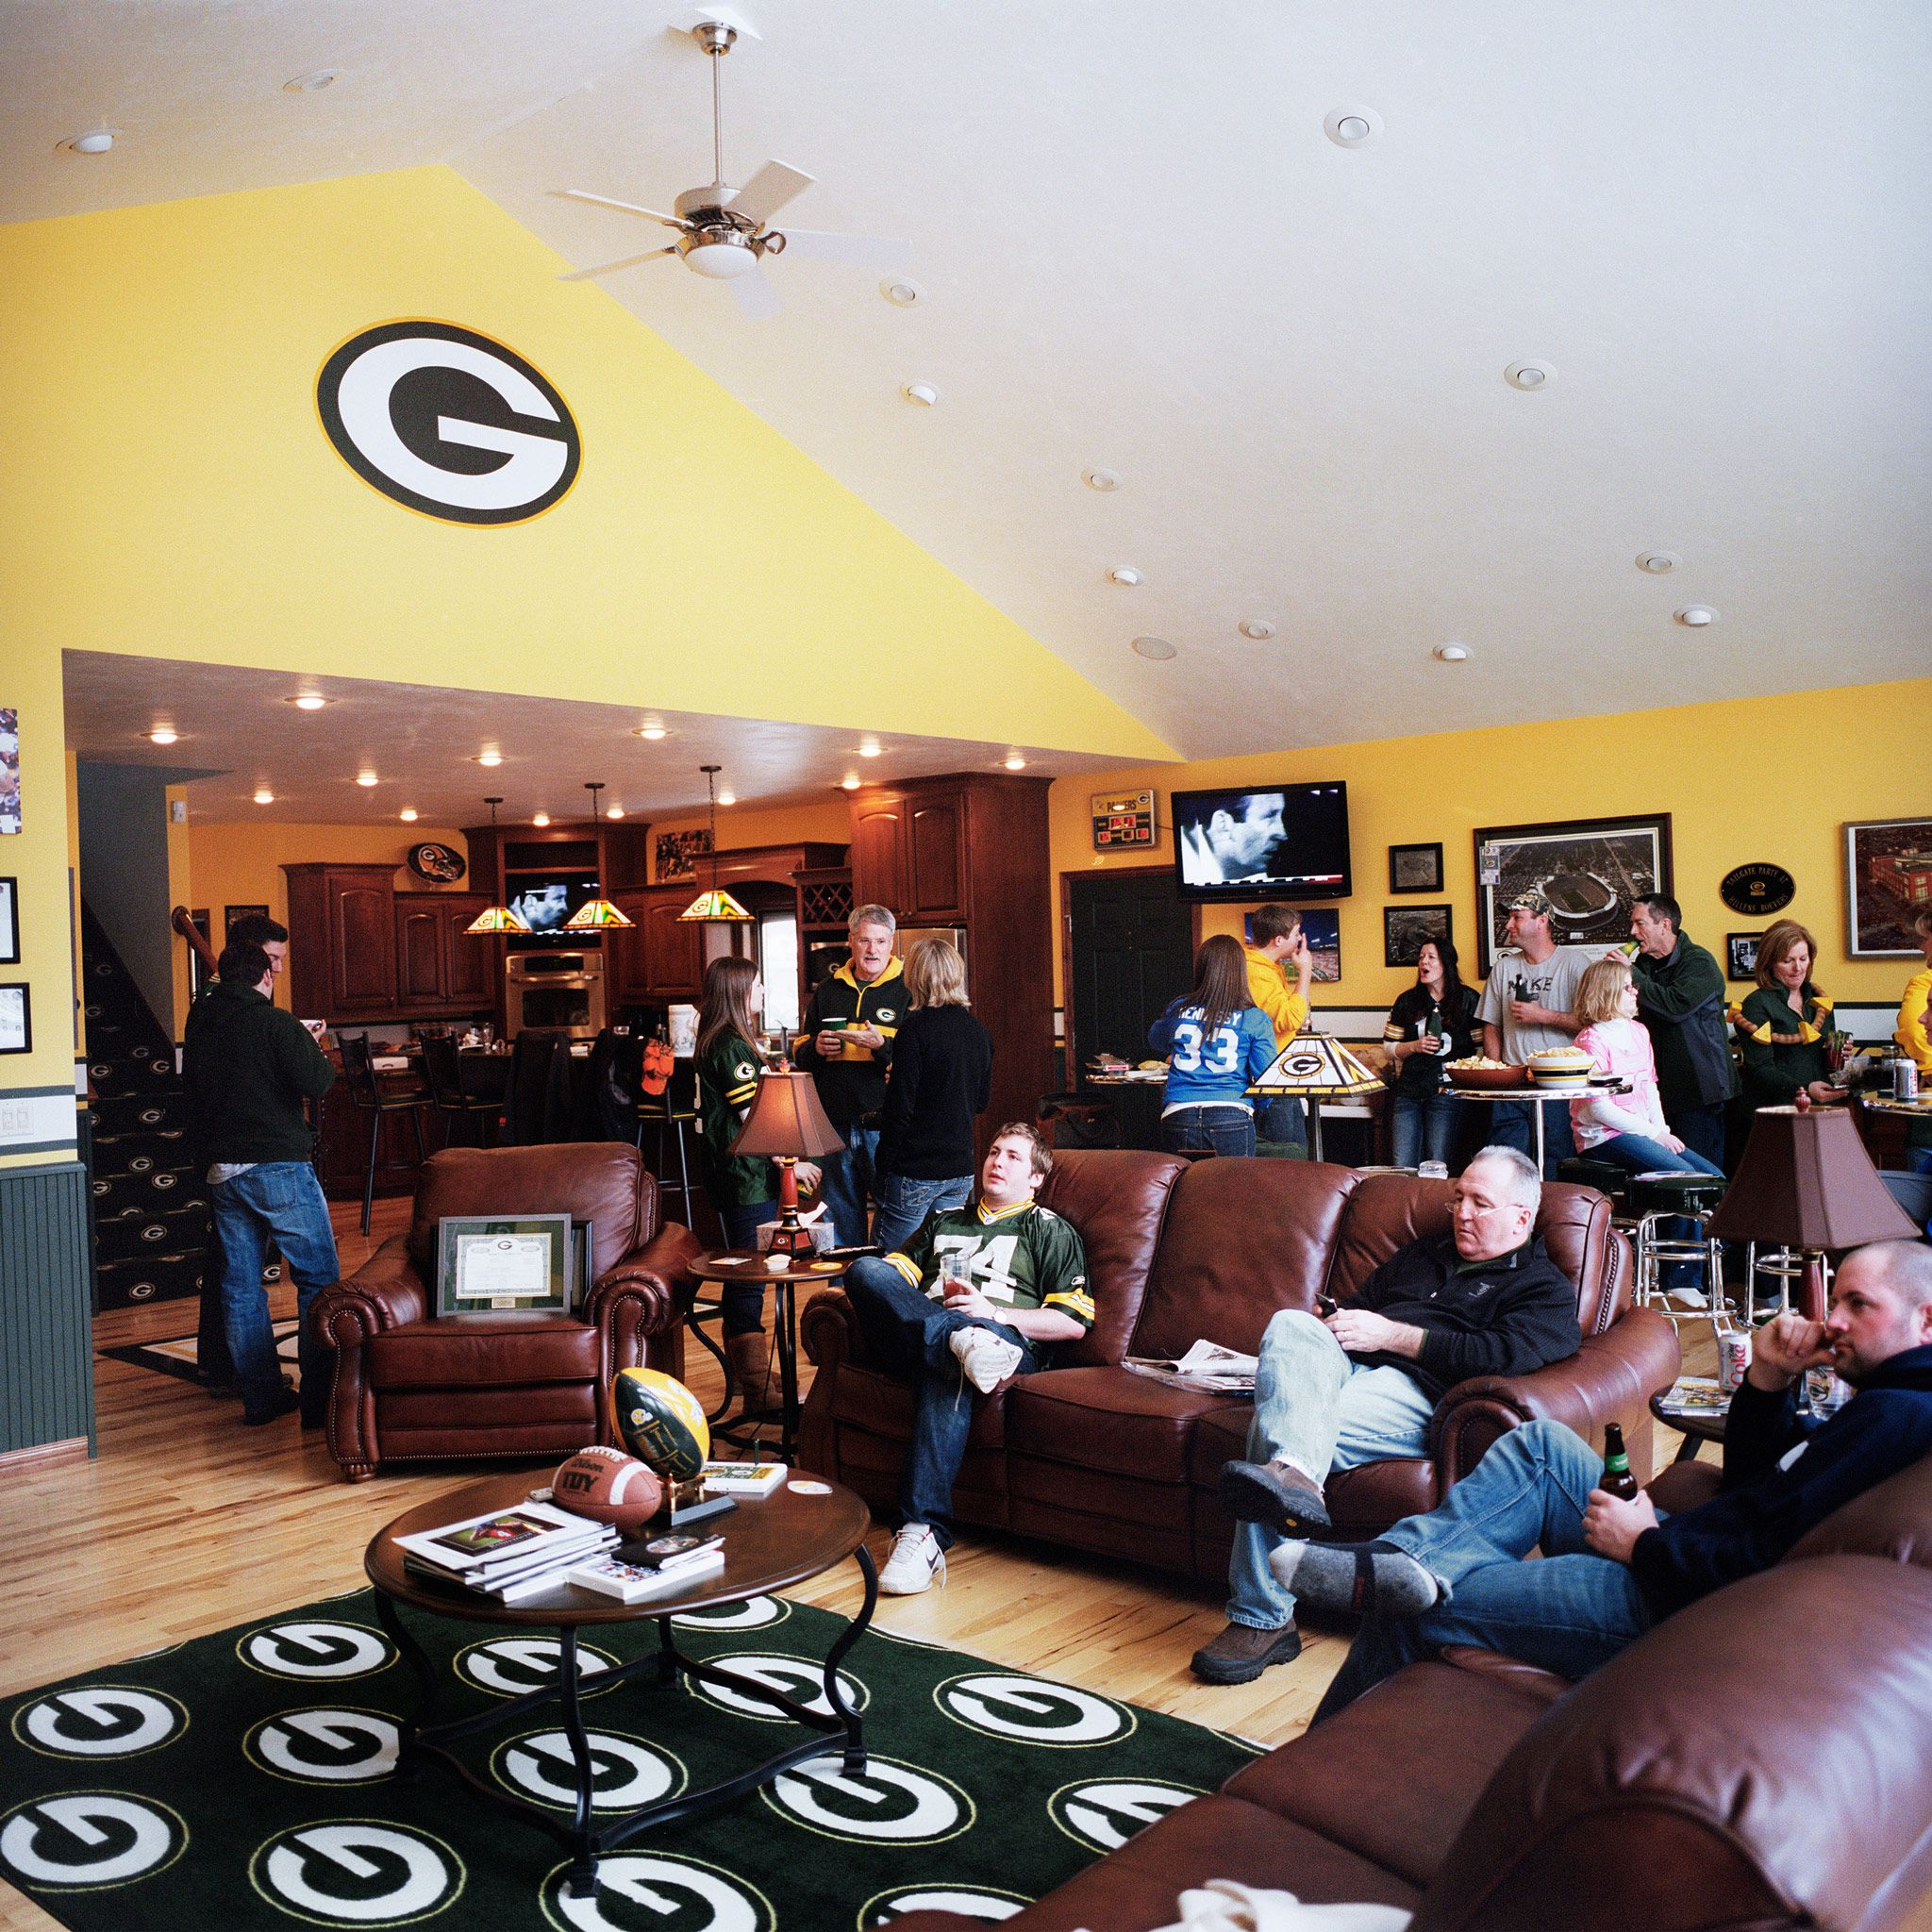 Welcome To Green Bay Packers Fans Photo Project Gallery Green Bay Packers Room Green Bay Packers Fans Green Bay Packers Man Cave